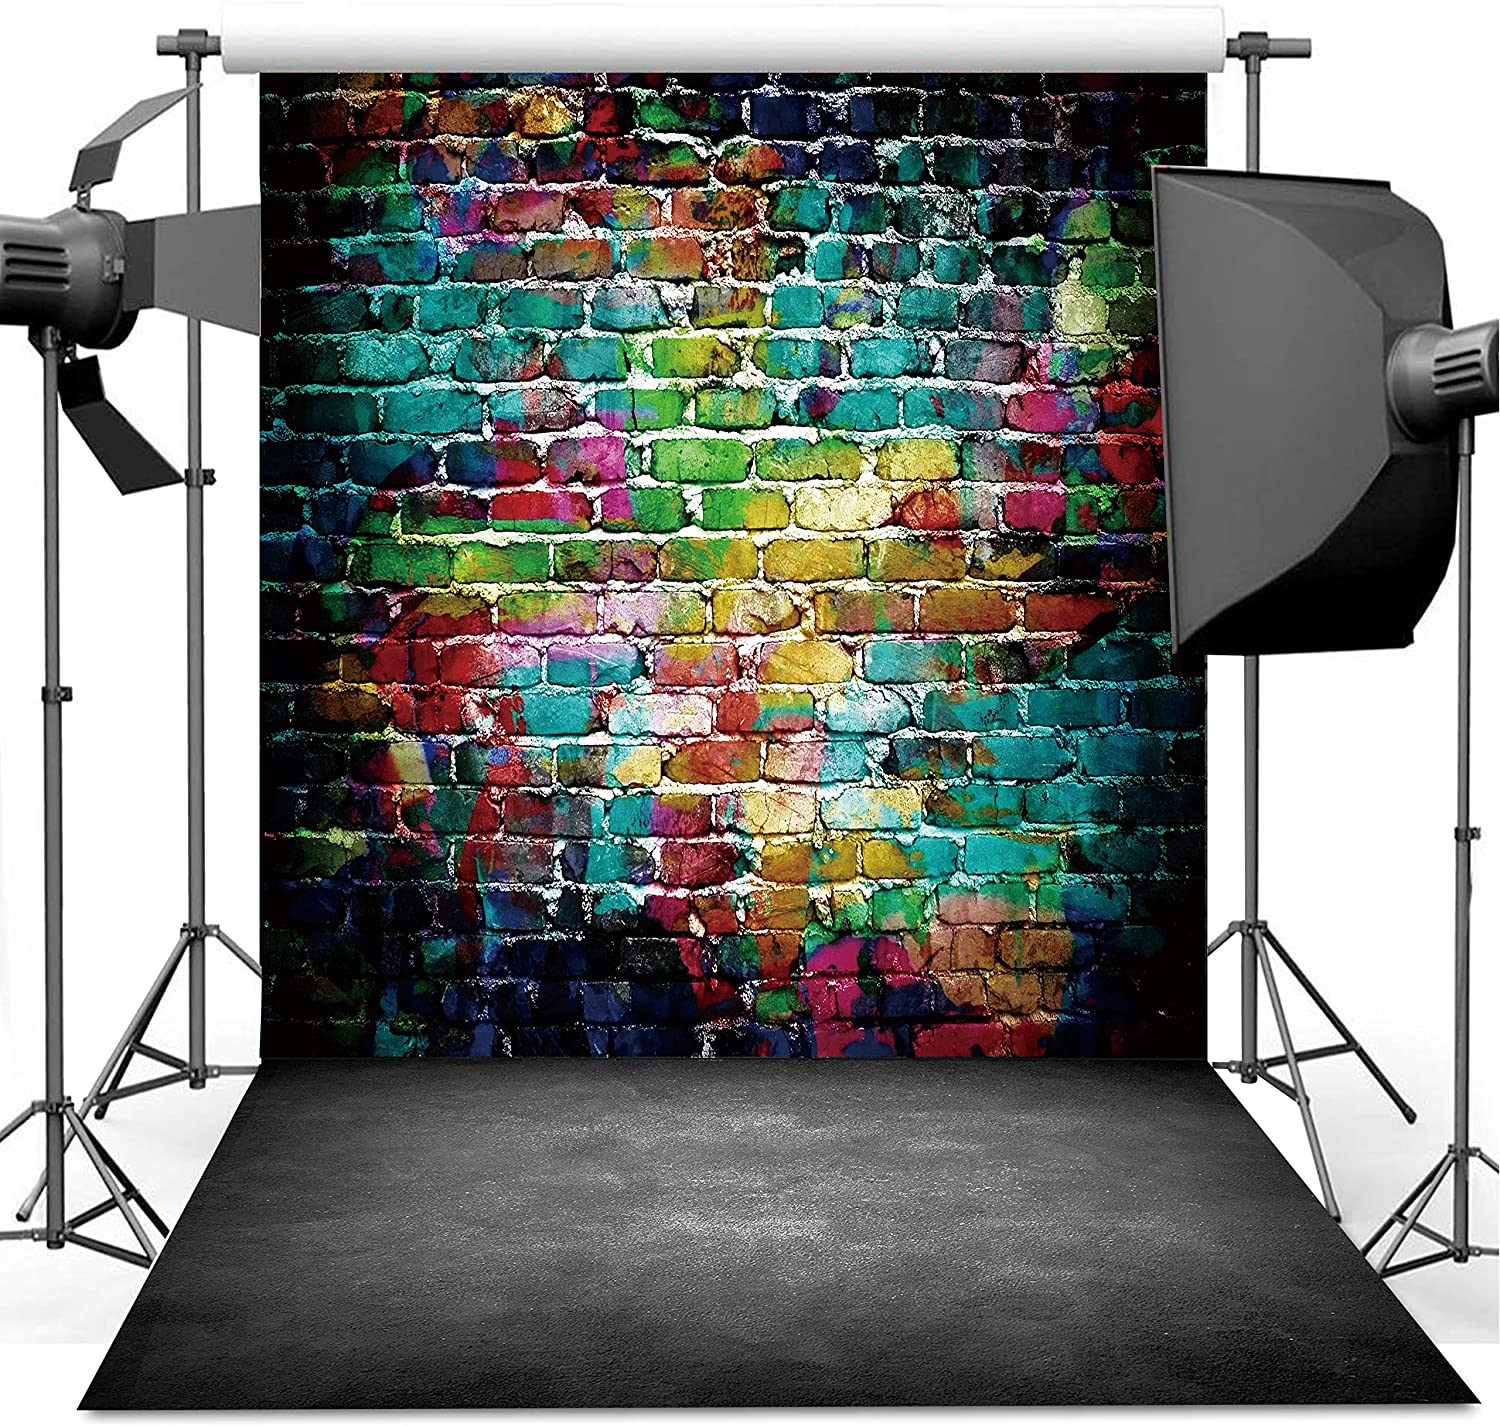 Dudaacvt Graffiti Photography Backdrop, 5x7 ft Colorful Brick Wall Vintage Cement Floor Backdrop for Studio Props Photo Background Q0010507